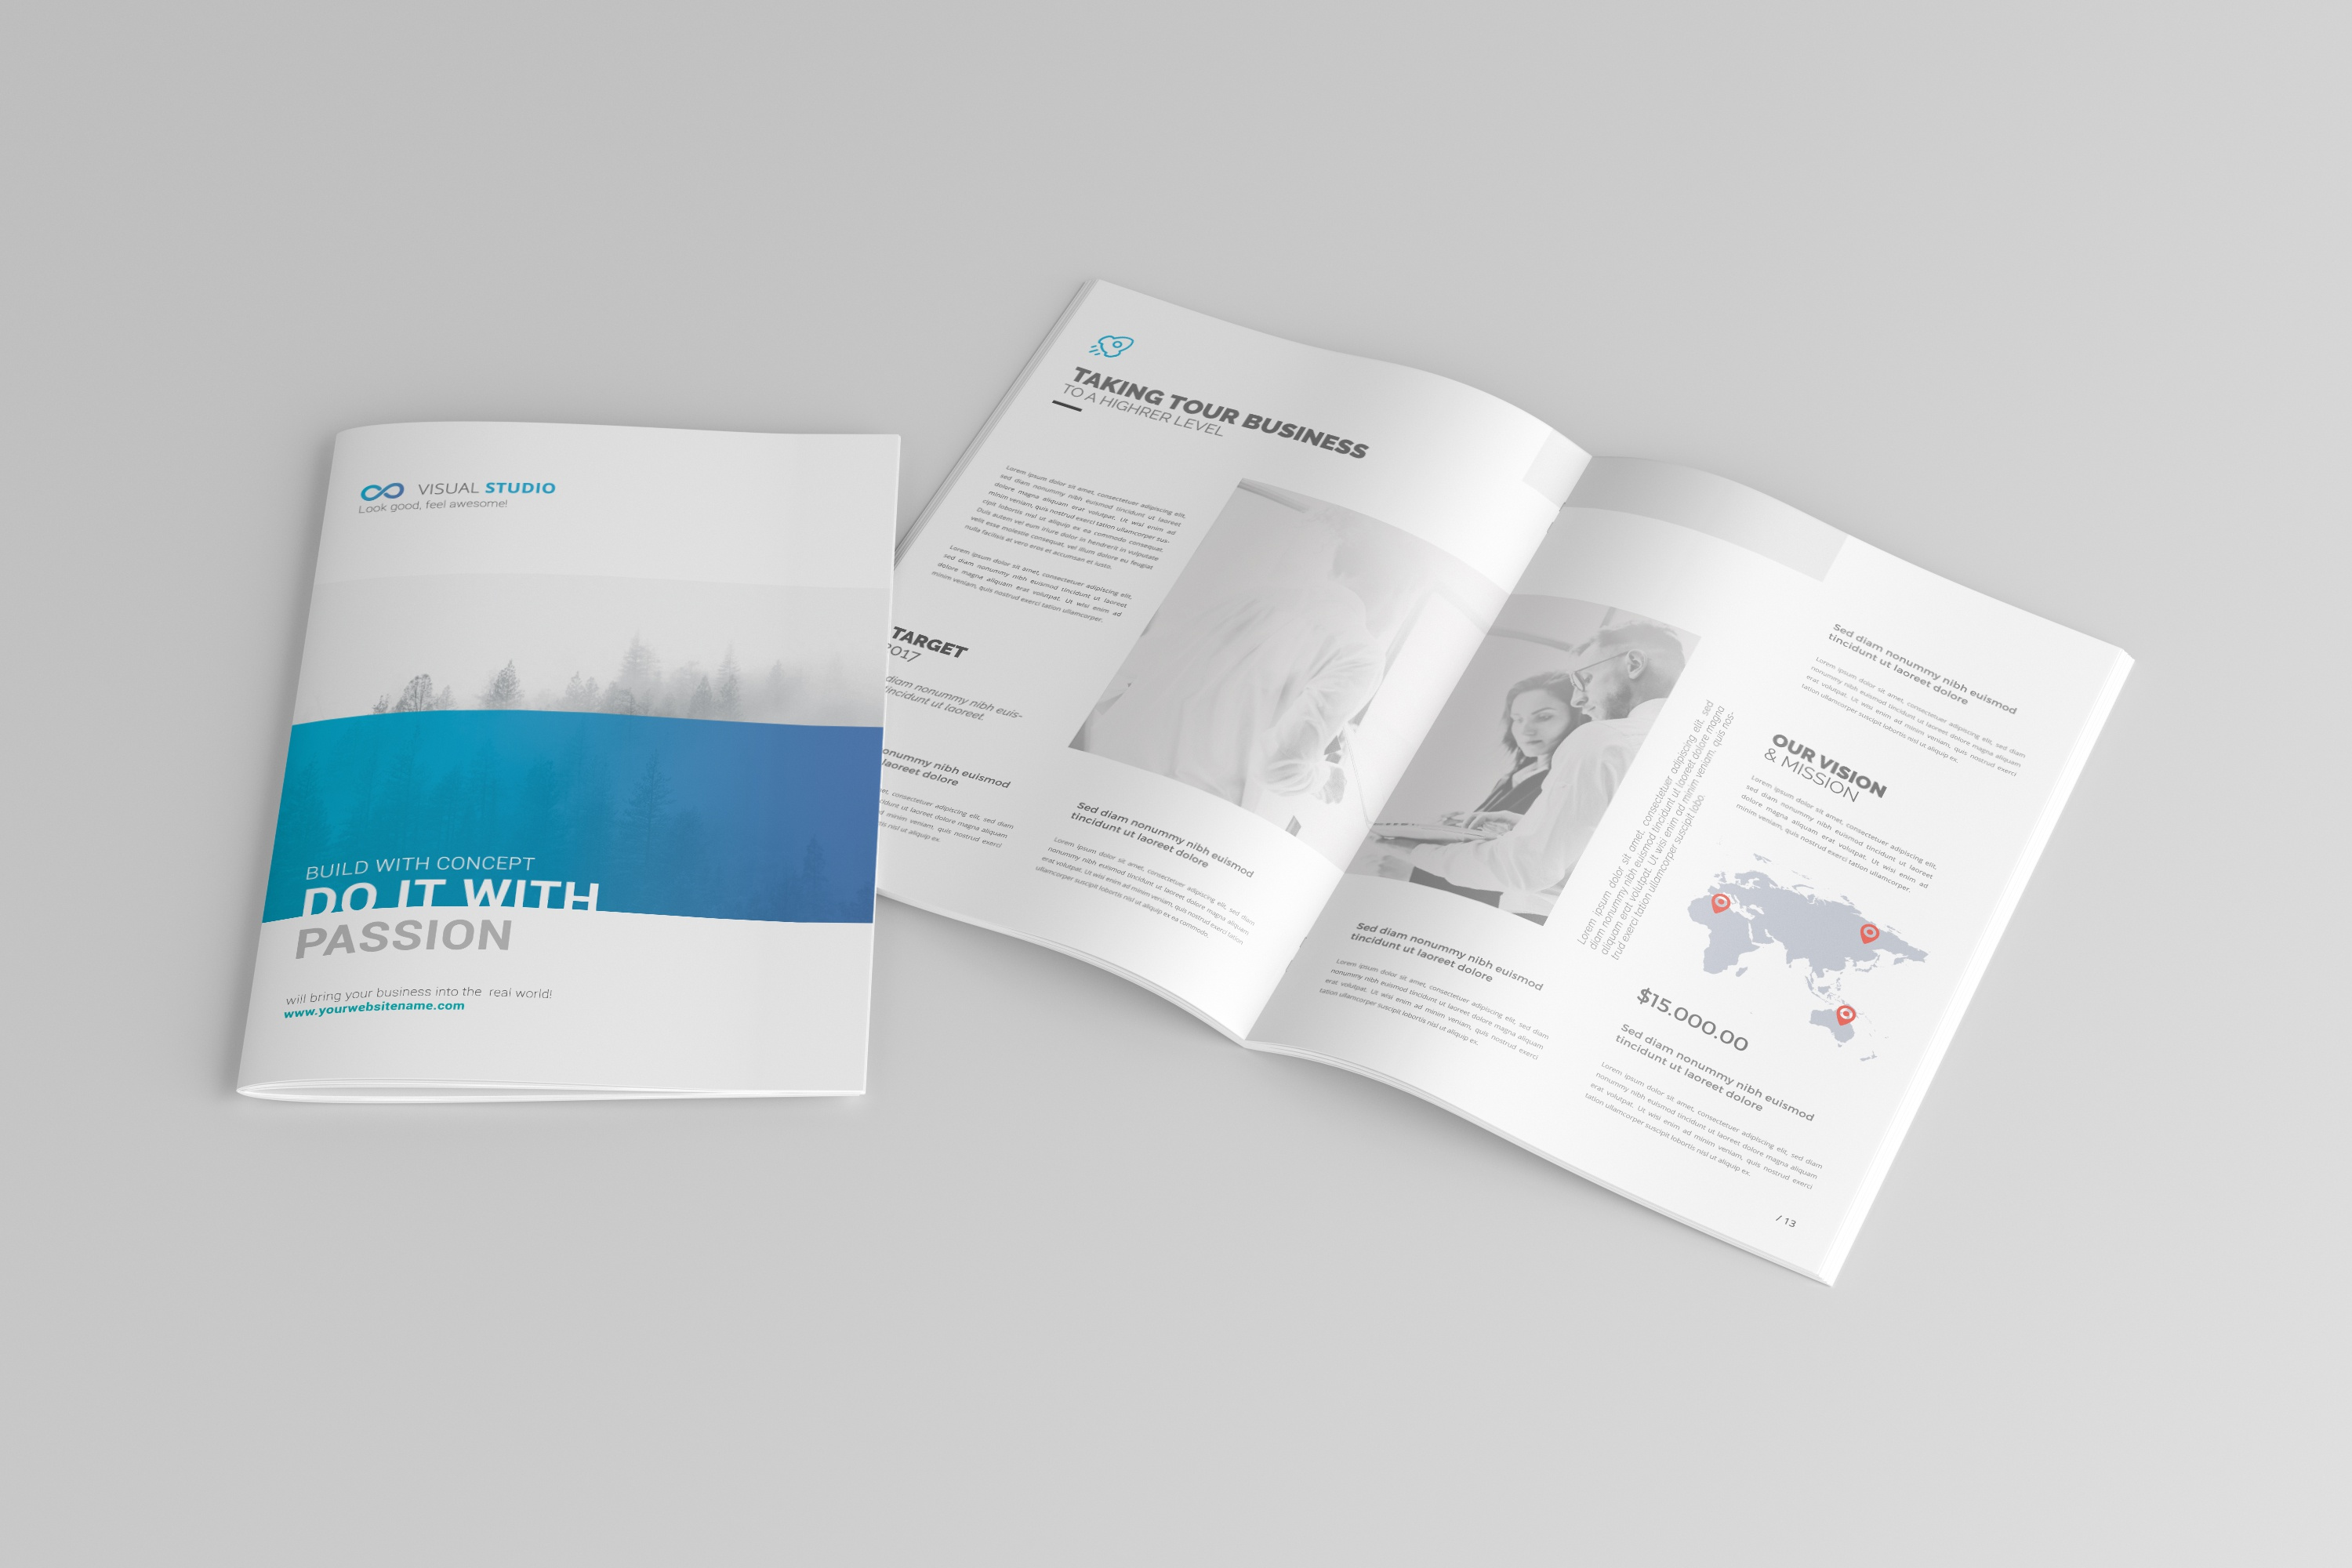 dribbble 03 a4 brochure catalog magazine mockup jpg by toasin studio